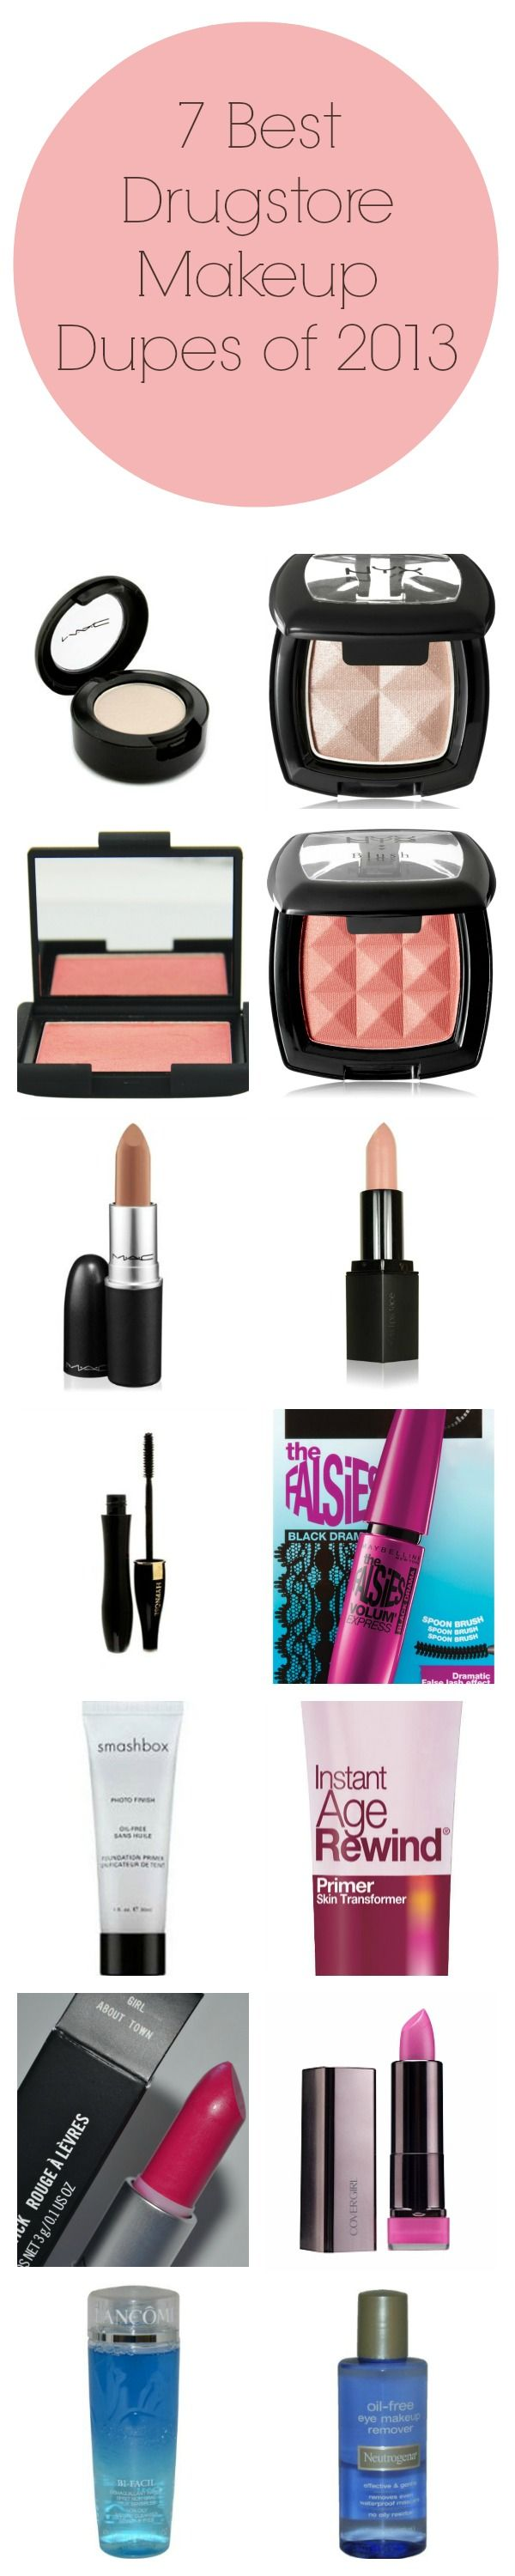 7 Best Drugstore Makeup Dupes of 2013, I do own the majority of these and can say they are all very close ! -Alison